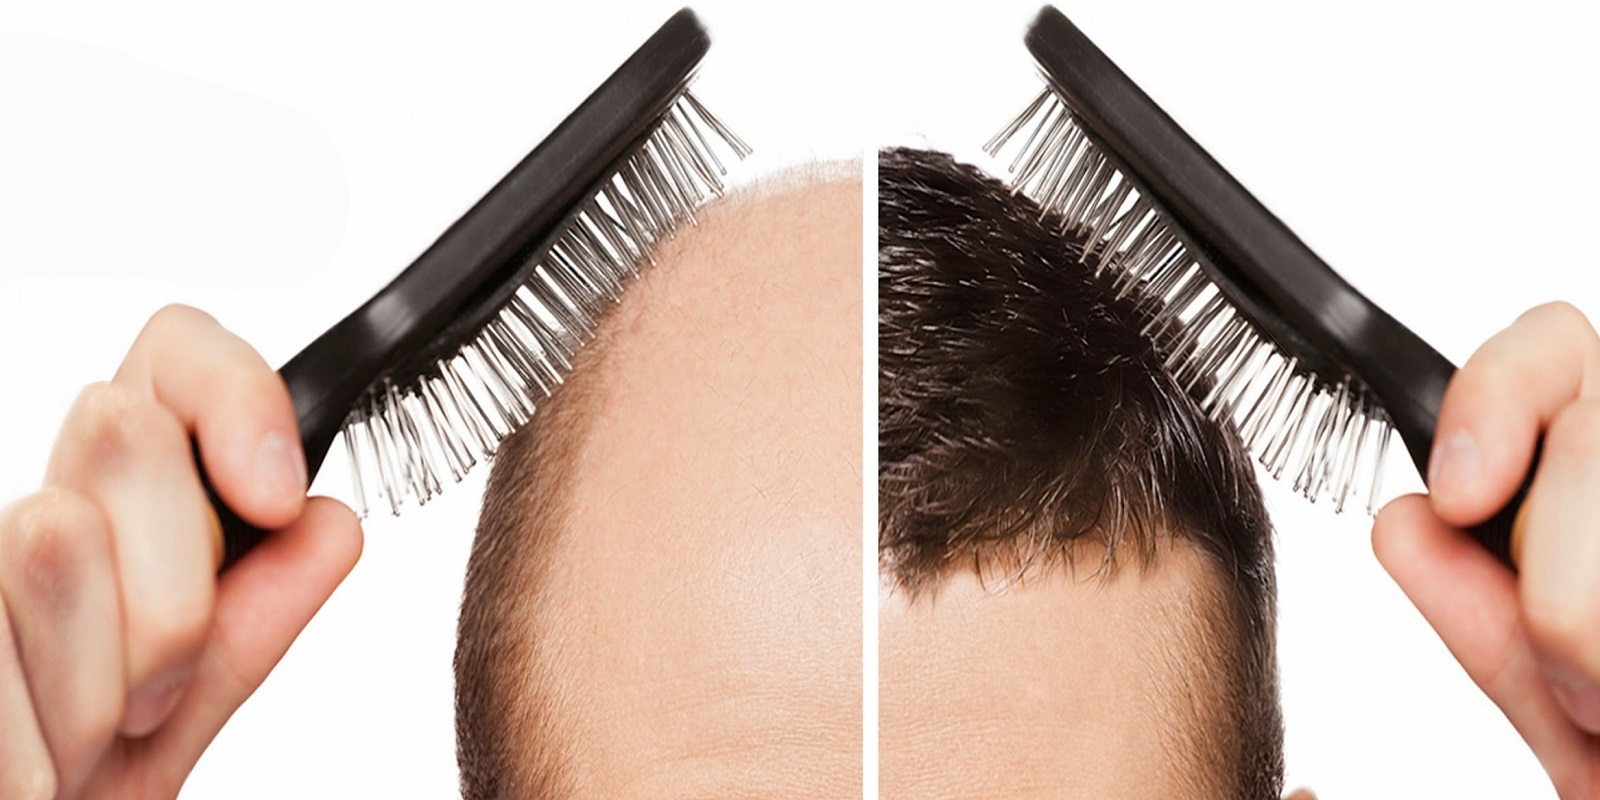 Hair Transplant in Chandigarh 2 1 - Get Your Hair Back With Hair Transplant